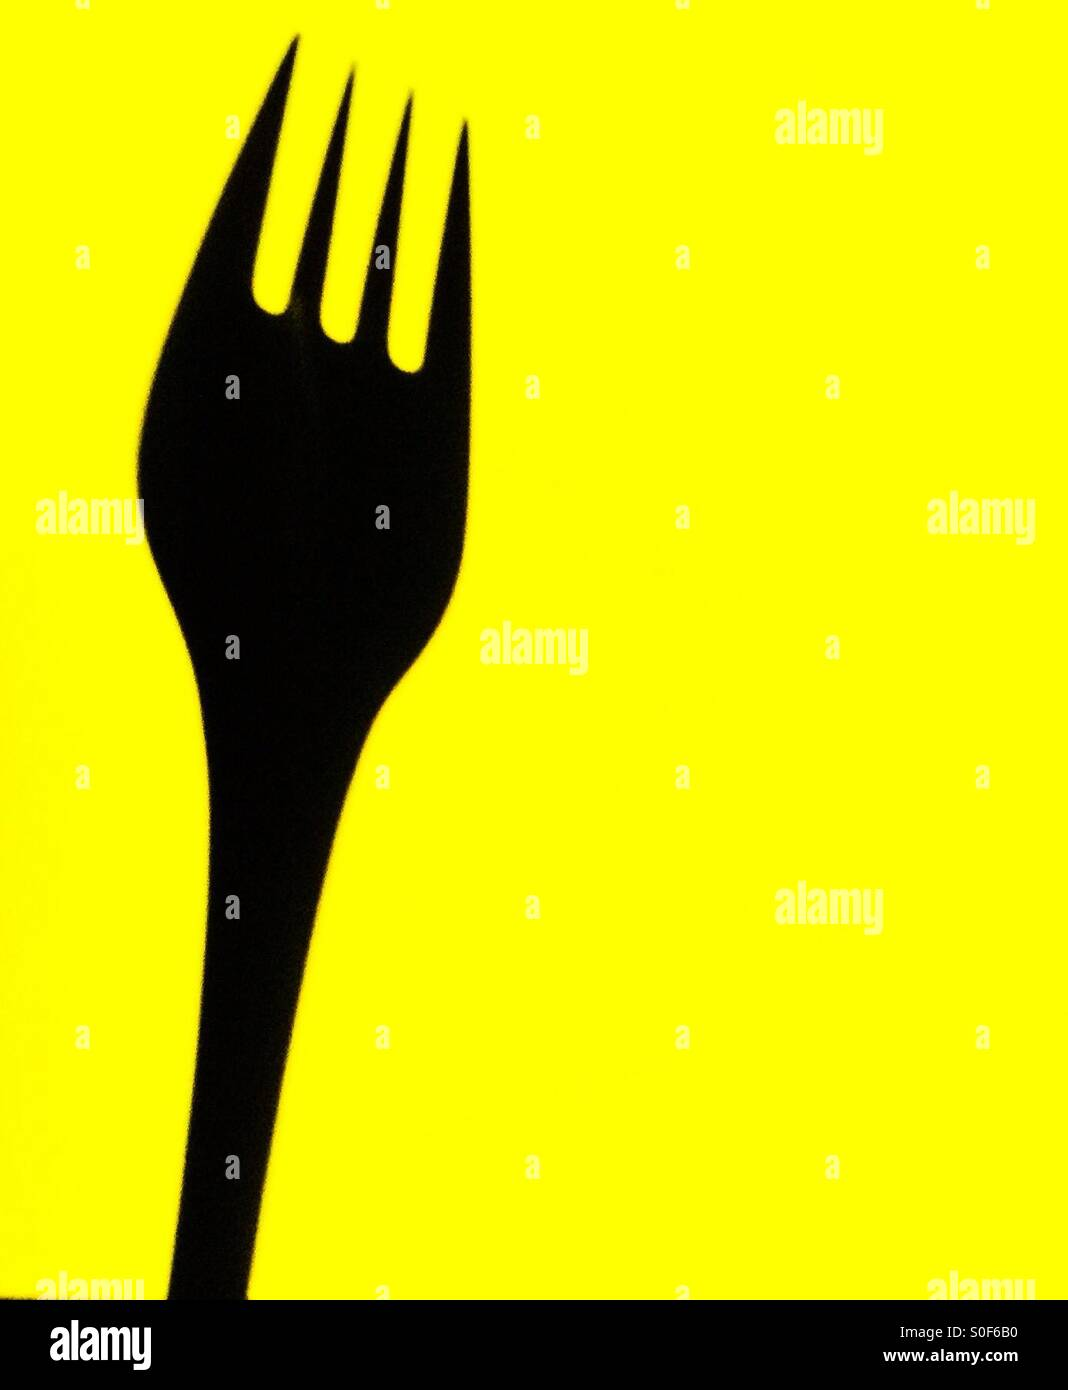 A fork on yellow background - Stock Image